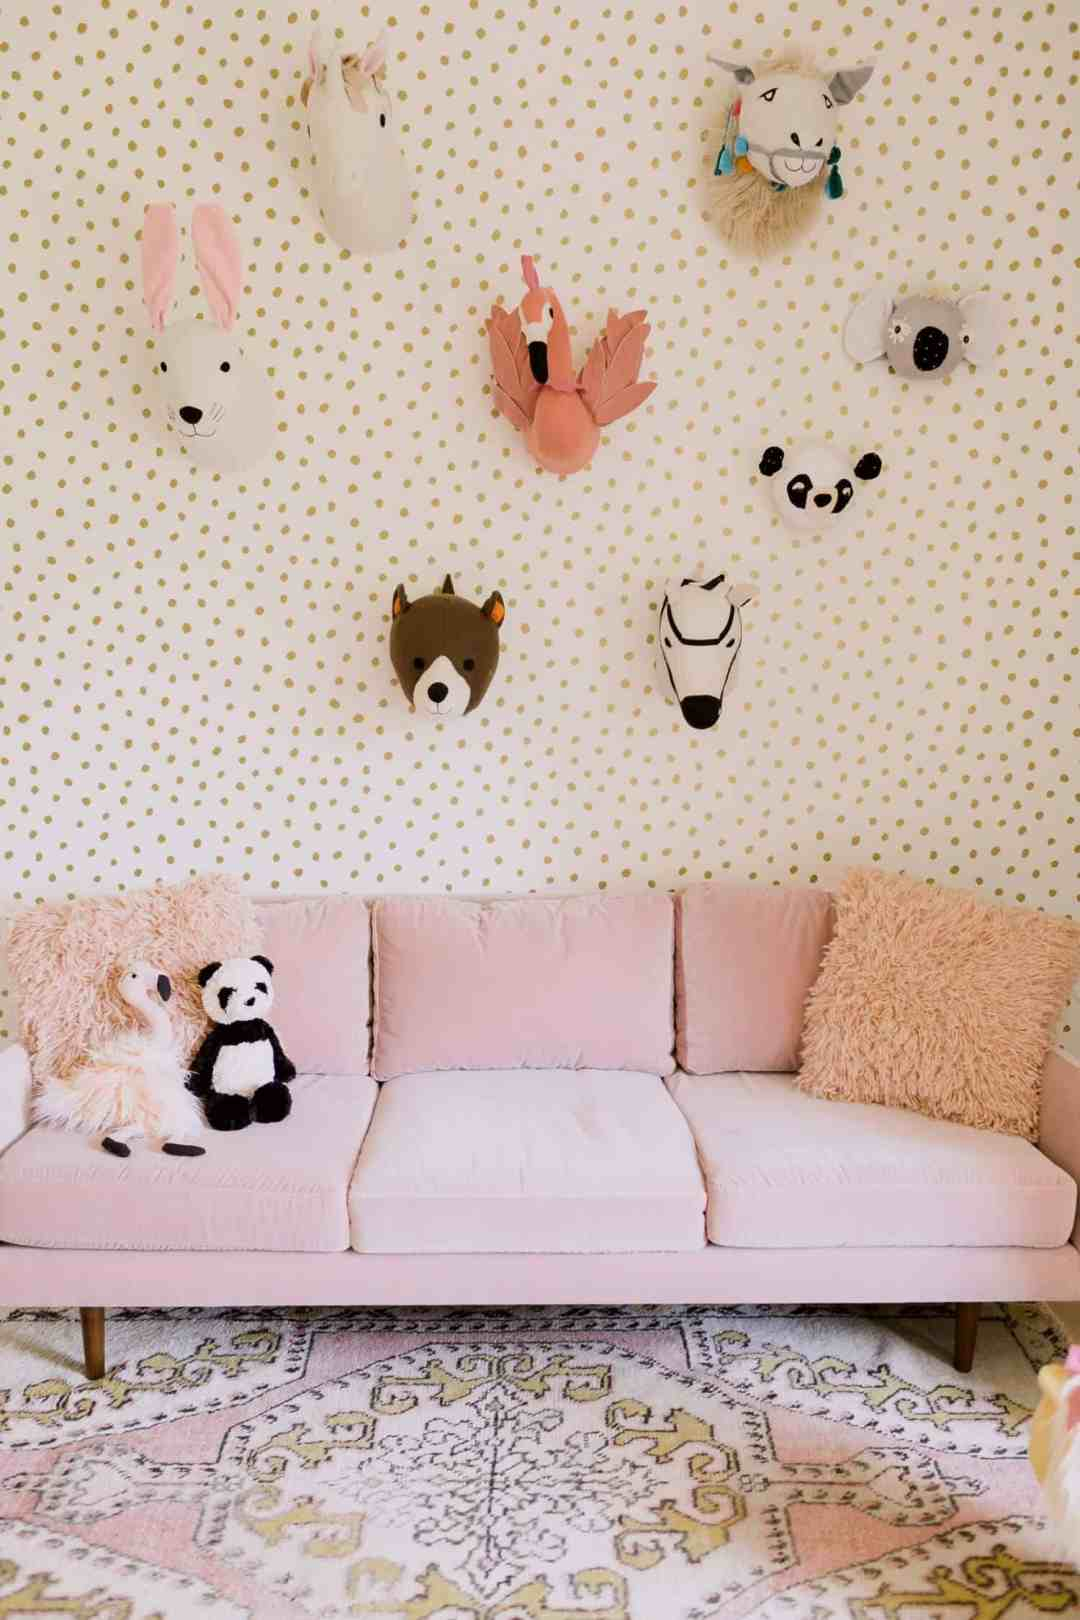 Flamingo head wall decor in a playroom - Decorate your home with flamingos | Aliz's Wonderland